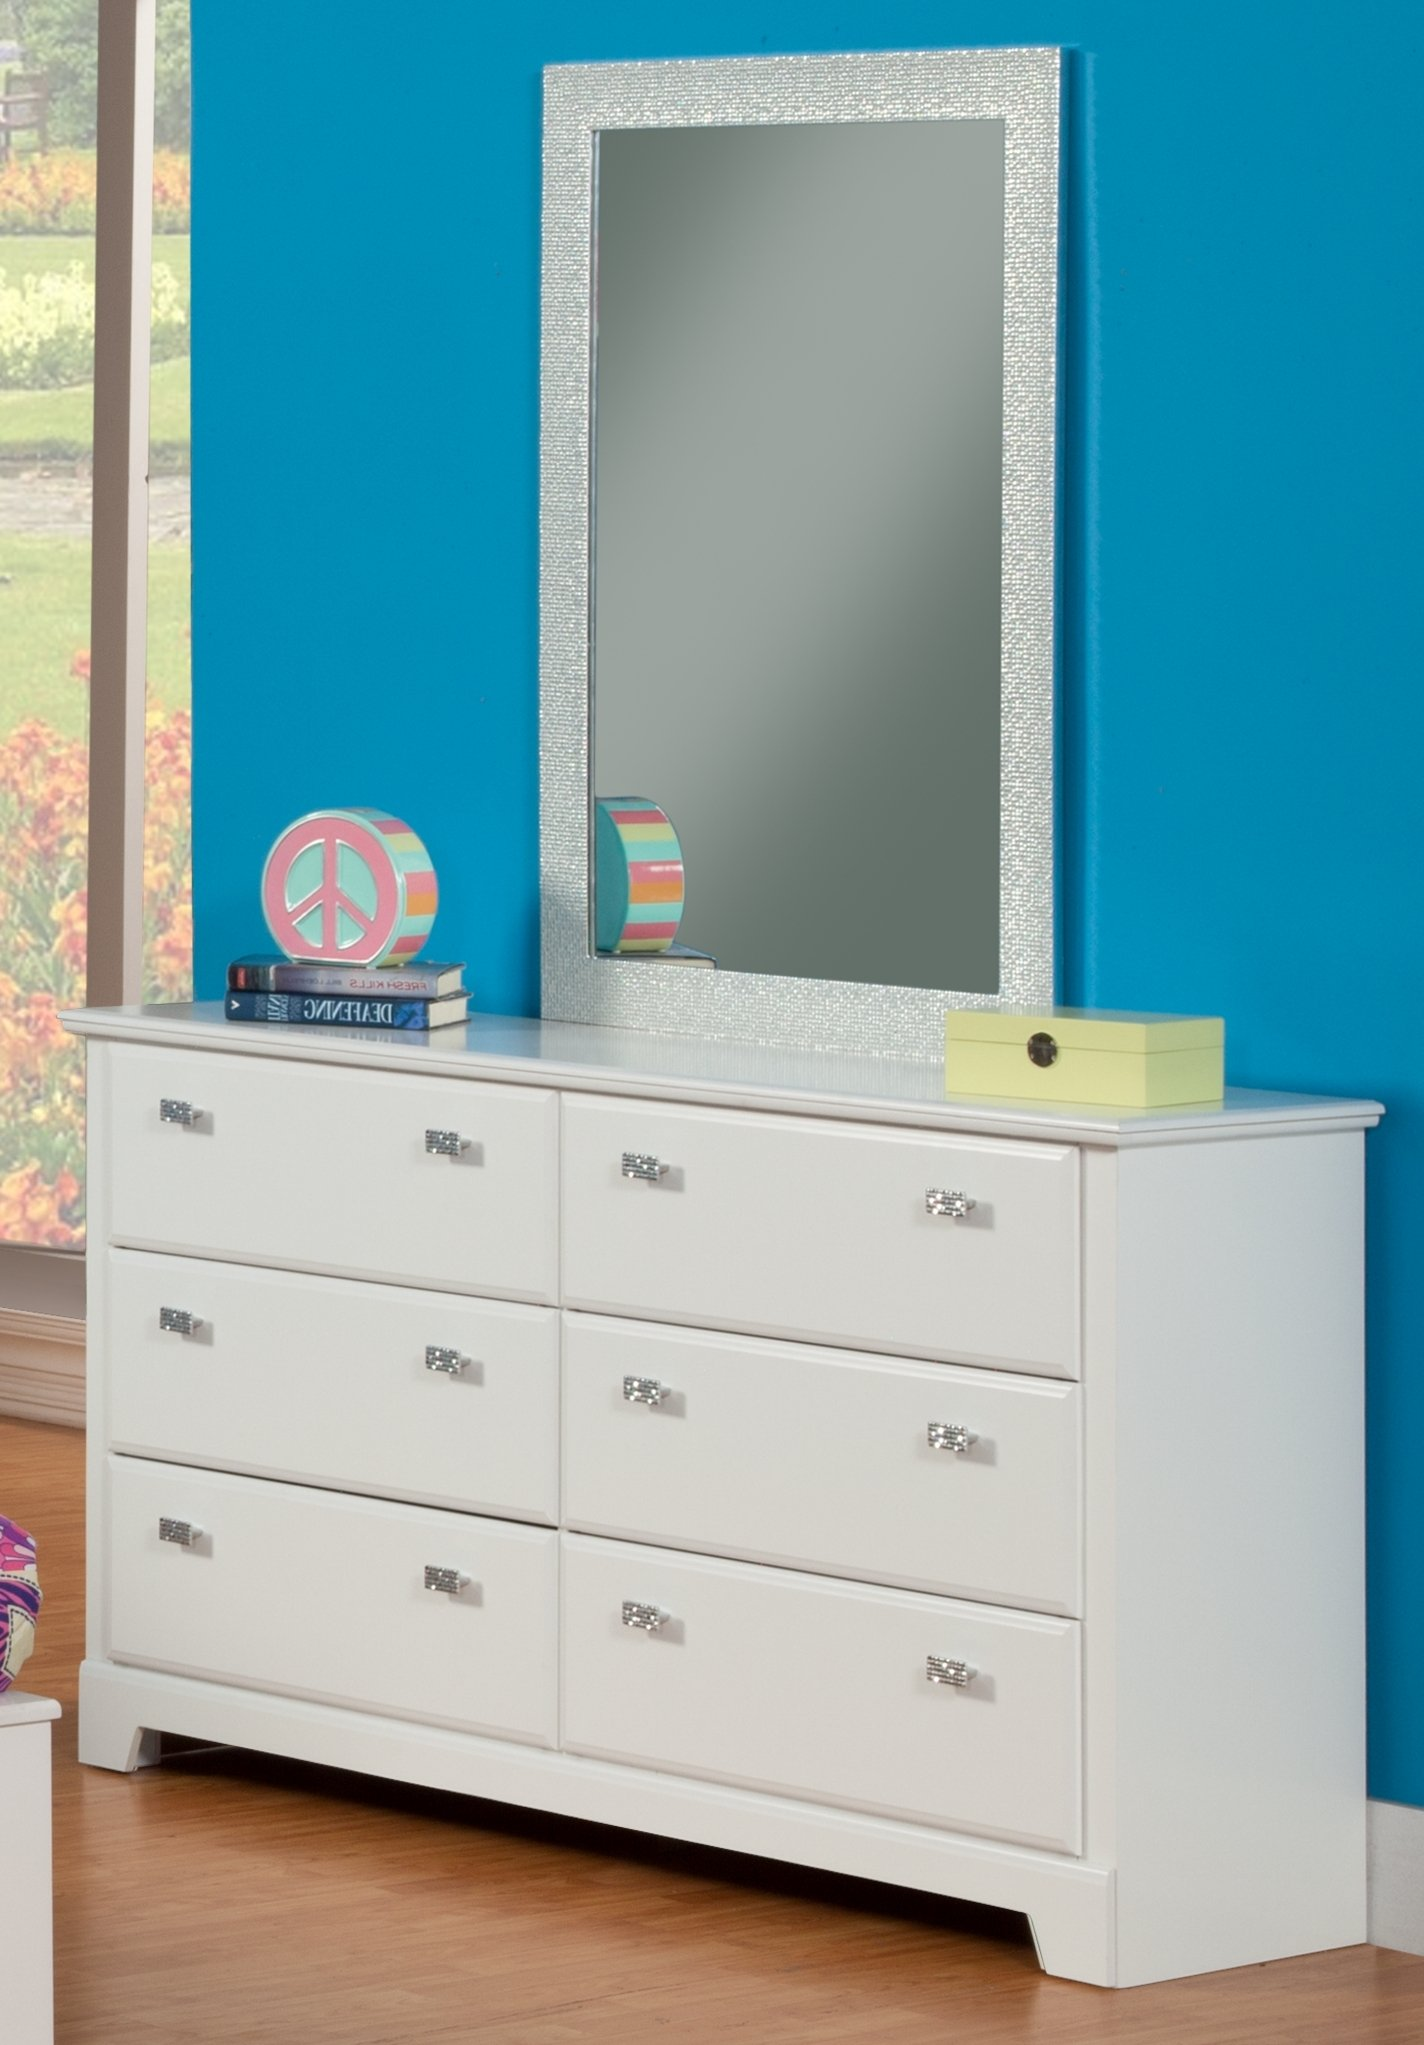 Sandberg Furniture Hailey 6-Drawer Dresser with Mirror, White